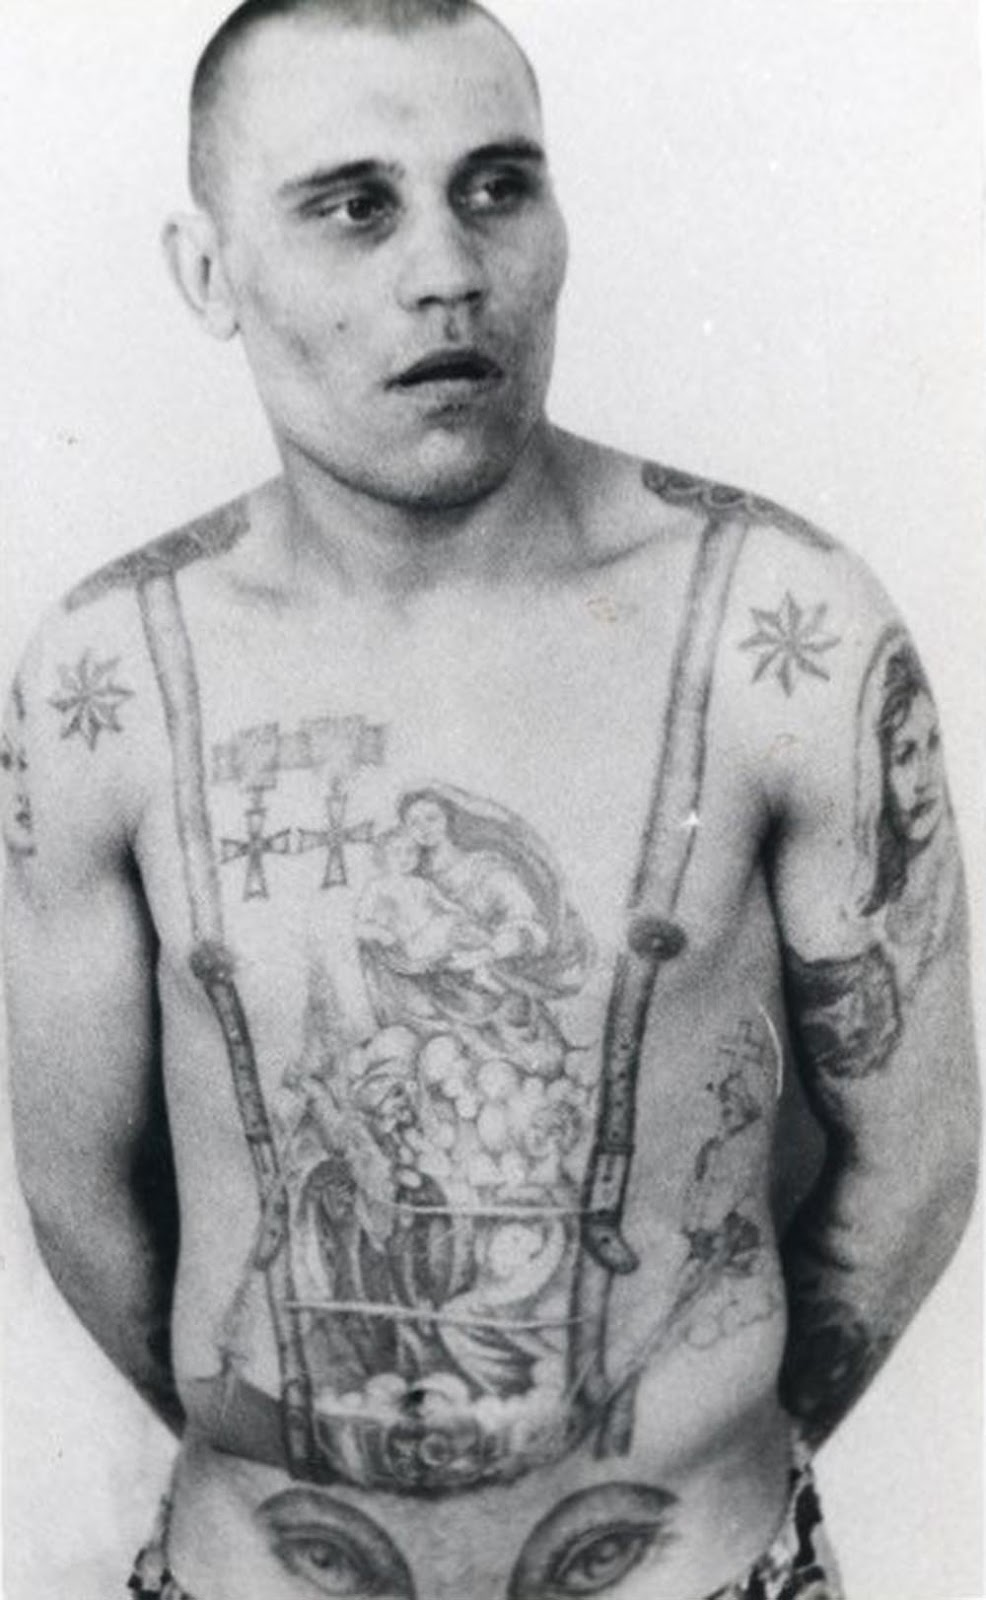 The stars on the shoulders show that this inmate is a criminal authority. The medals are awards that existed before the revolution and, as such, are signs of antagonism and defiance toward the Soviet regime. The eyes on the stomach denote a homosexual (the penis makes the 'nose' of the face).